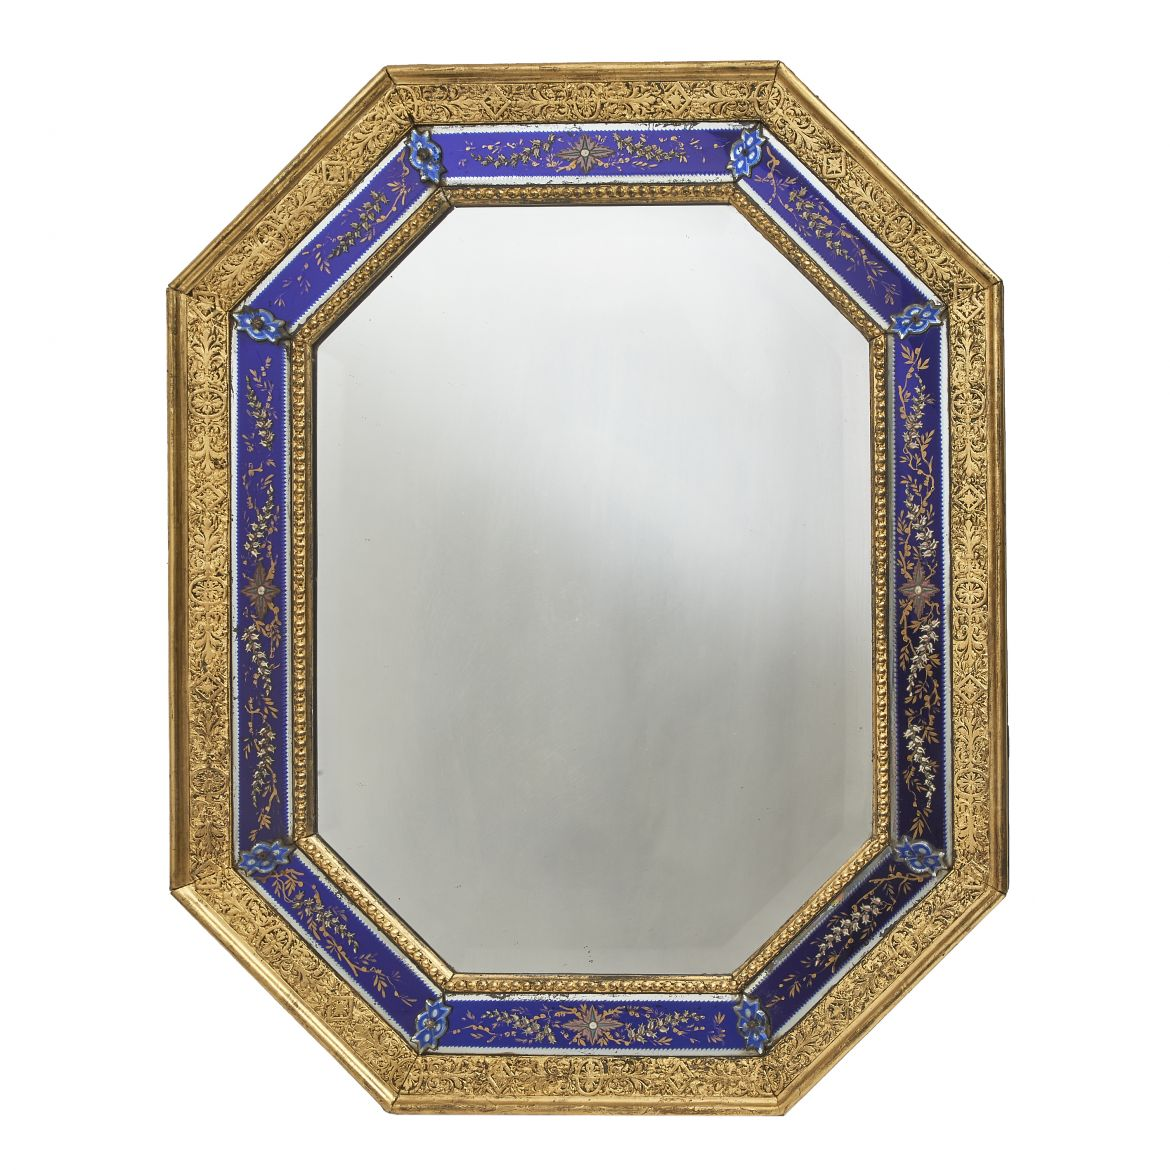 Glass & Enamel Octagonal Cushion Mirror